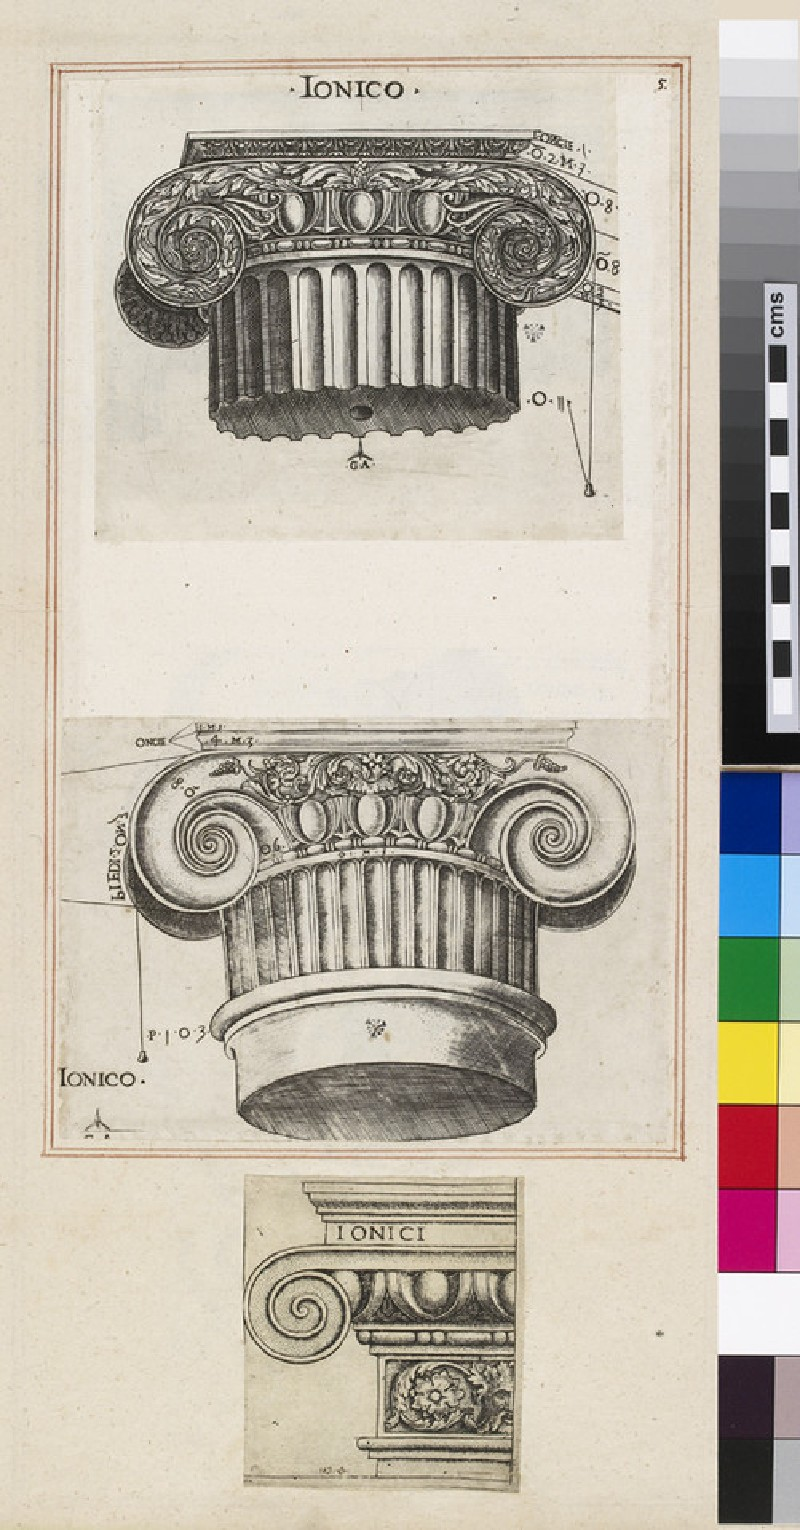 A Doric capital and its entablature